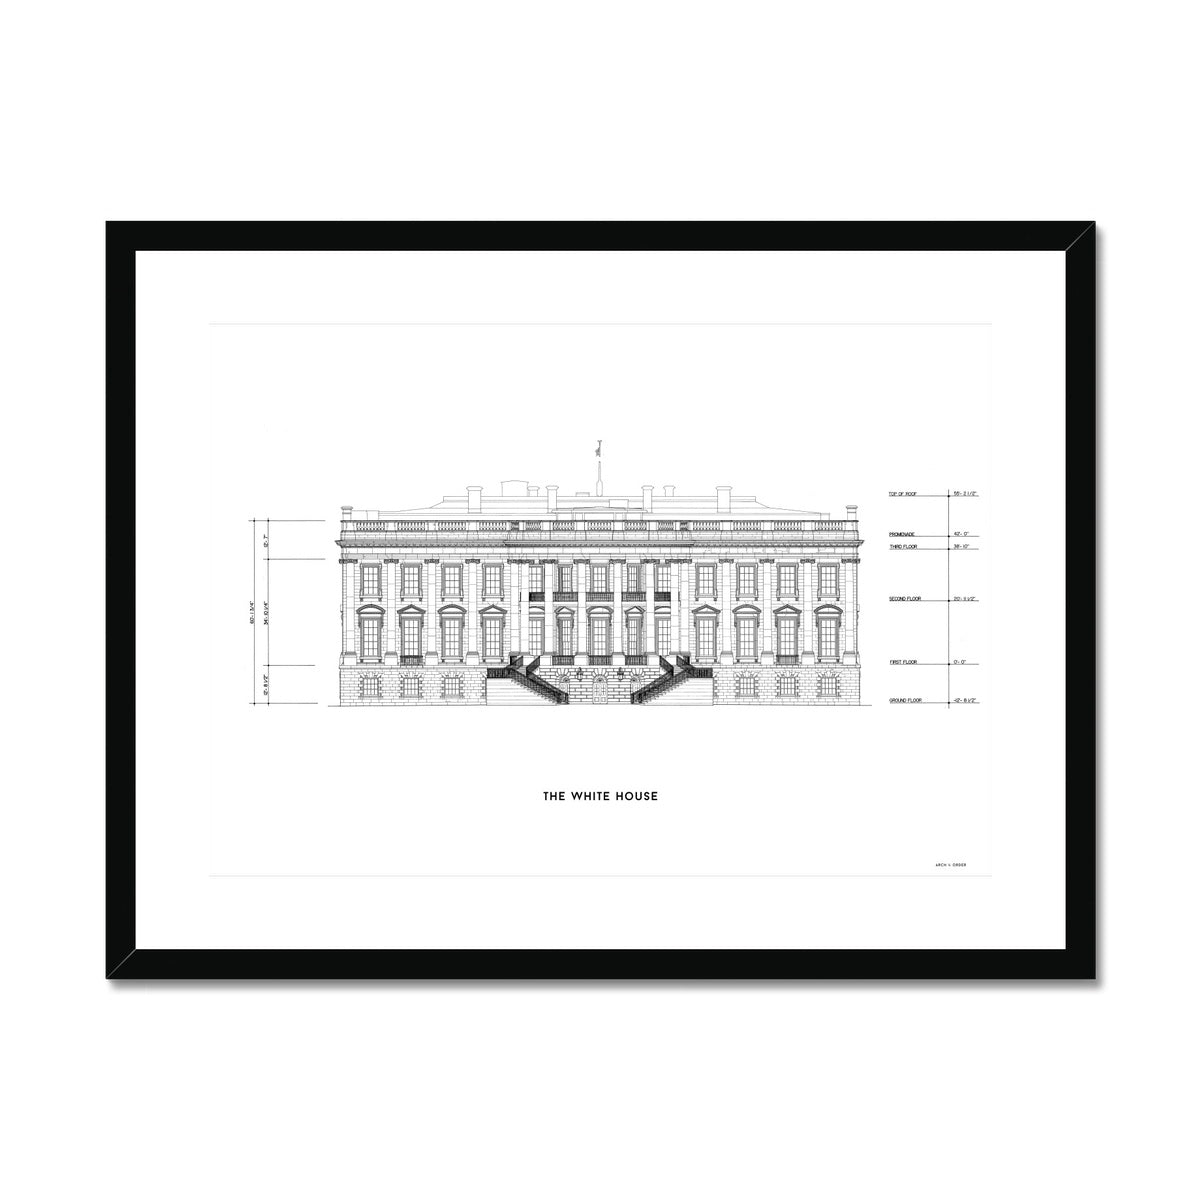 The White House South Elevation - White -  Framed & Mounted Print